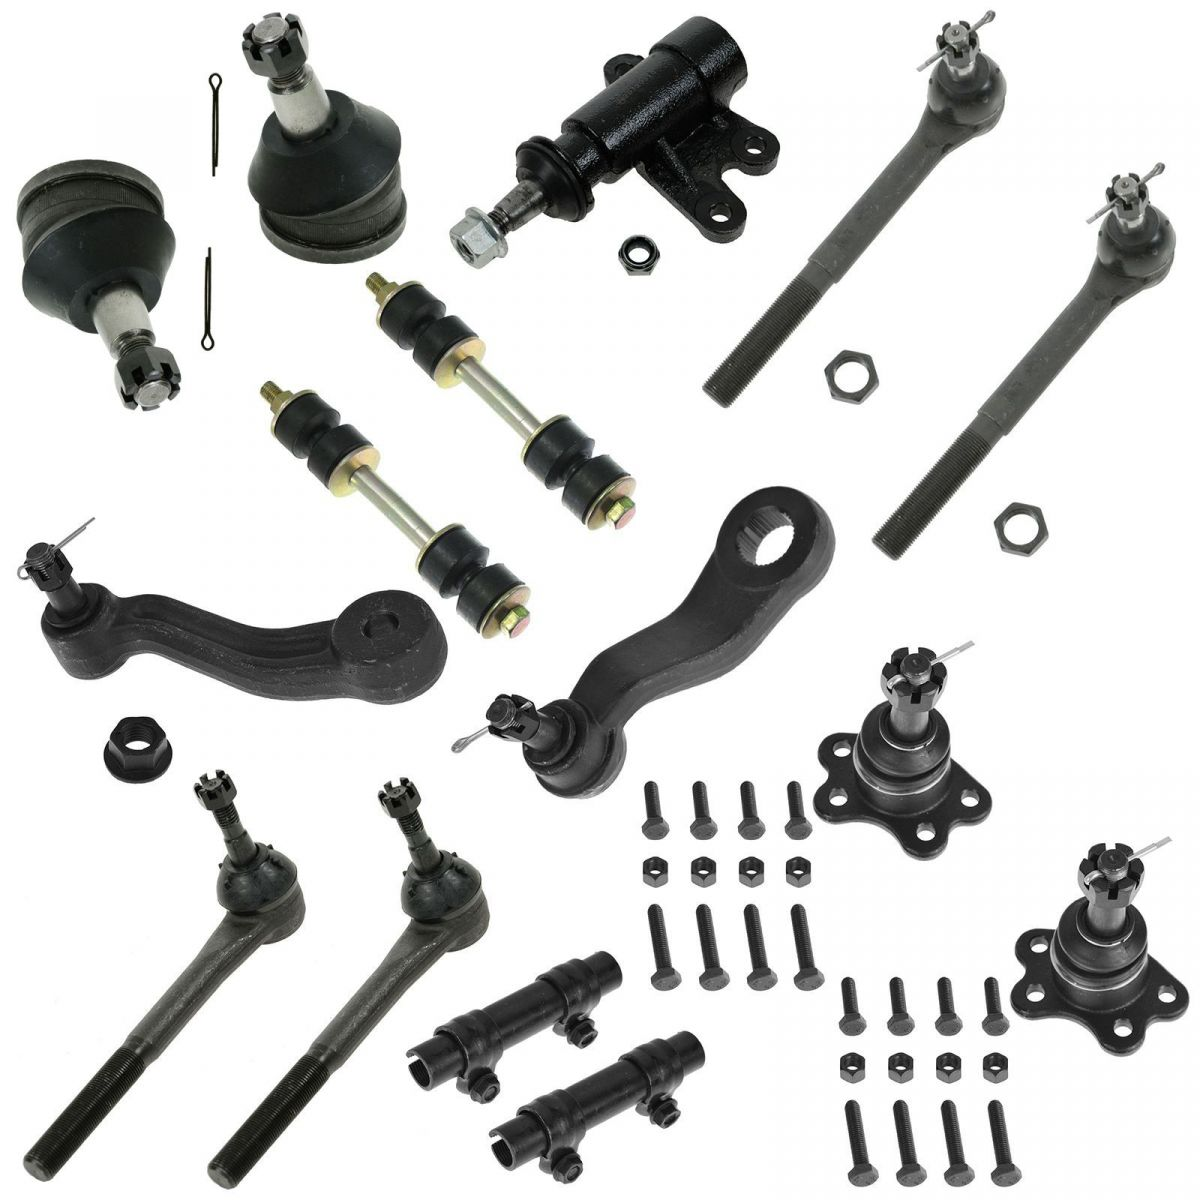 hight resolution of for 93 94 95 96 97 98 99 c1500 tahoe 2wd 15pc ball joint tie rod